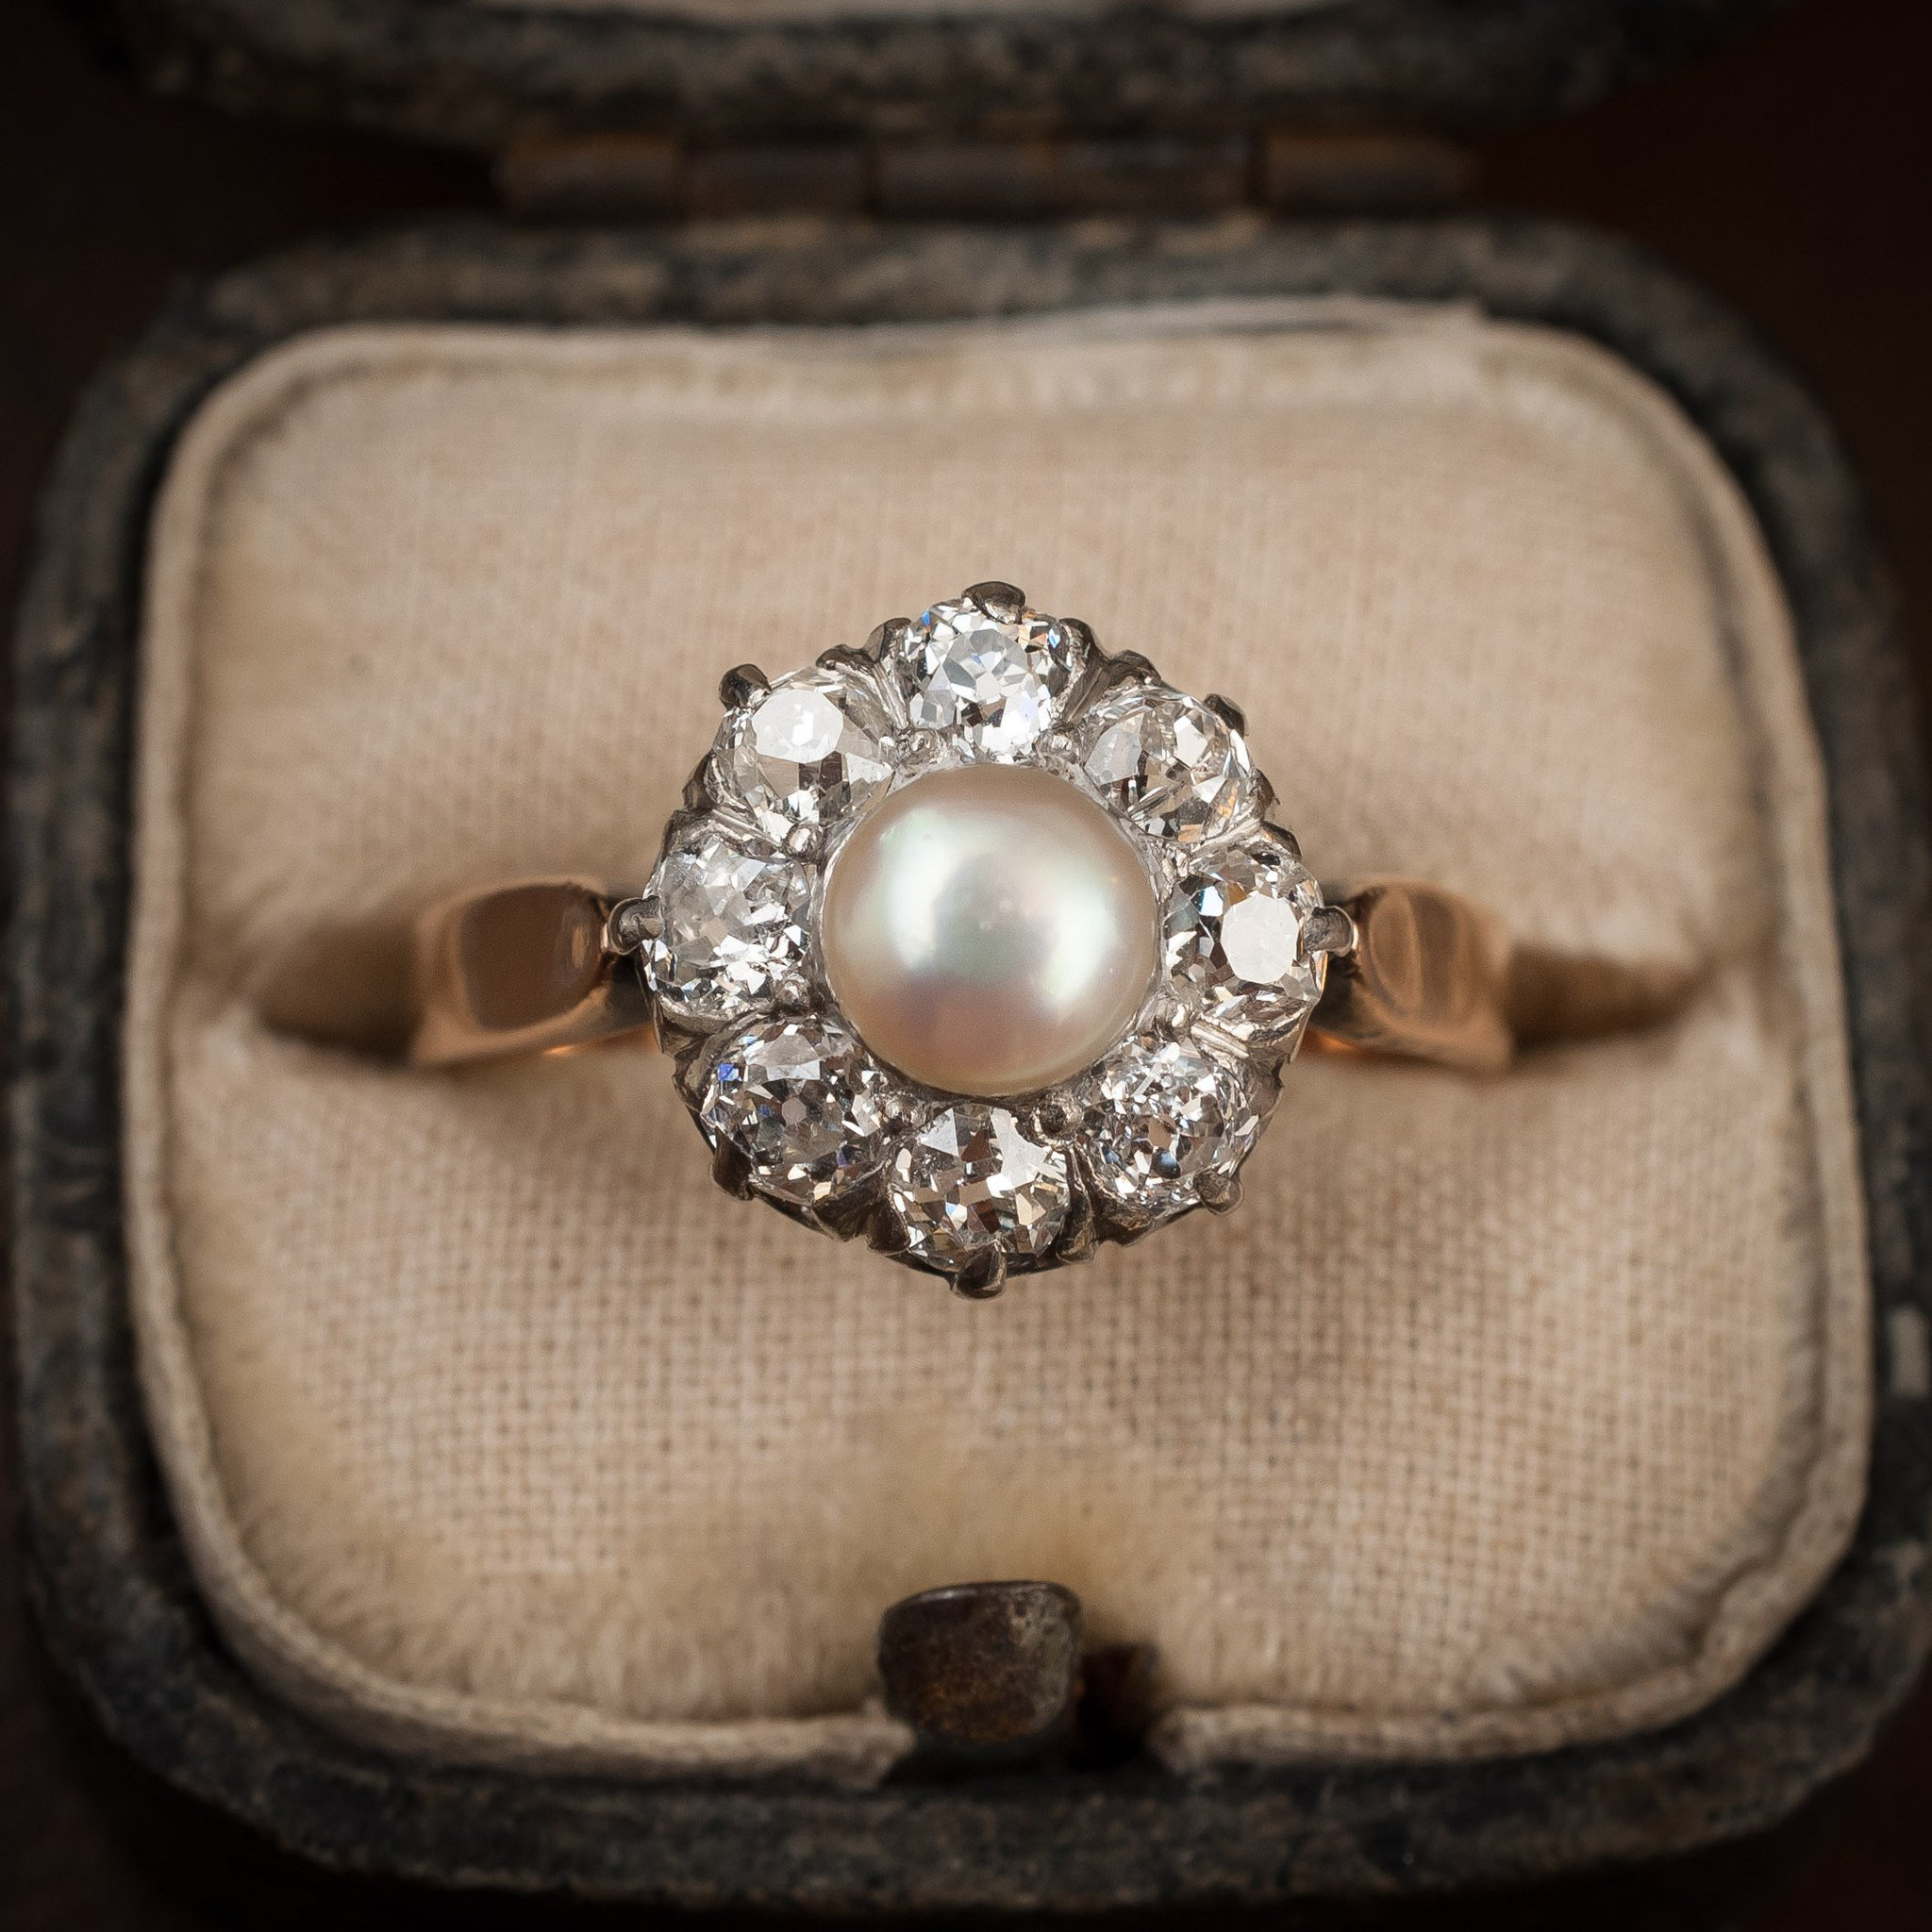 15 Pearl Engagement Rings For Timeless, Modern Day Bride